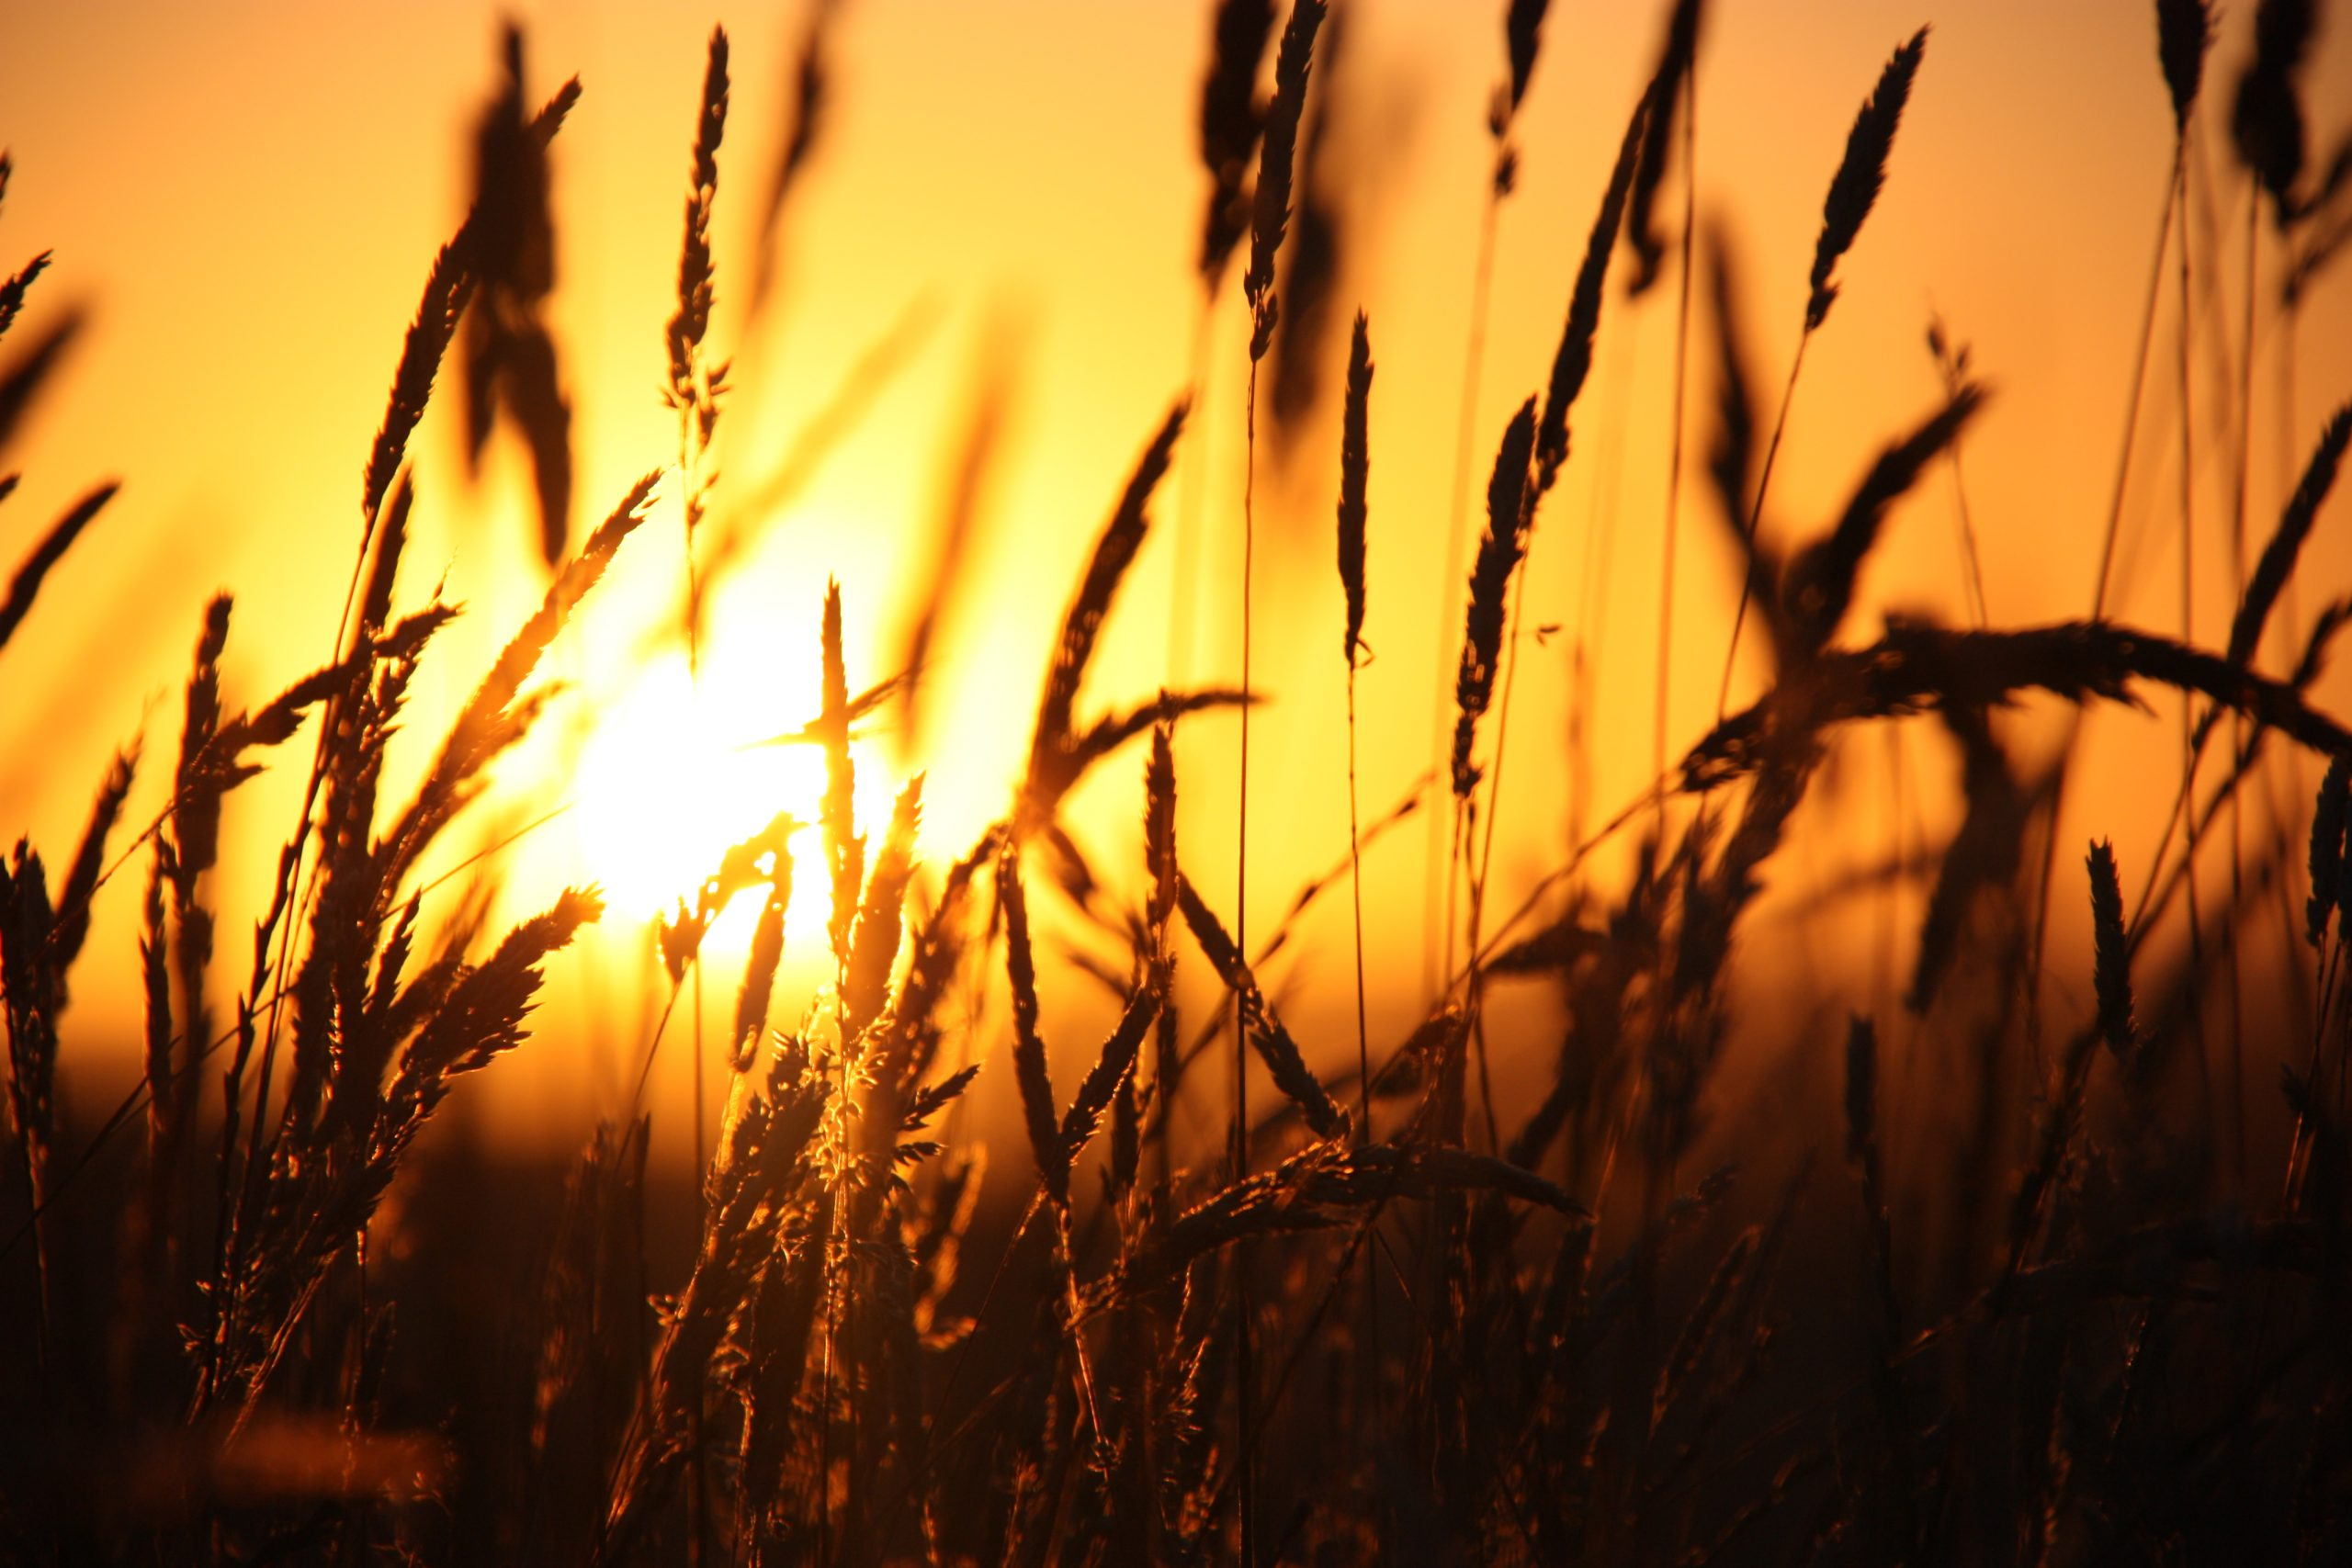 """Sweeping Grass in Sunset."" Image by Sophie Holcombe. 2012 Winner - 'Red Sky at Night' - Secondary Category"